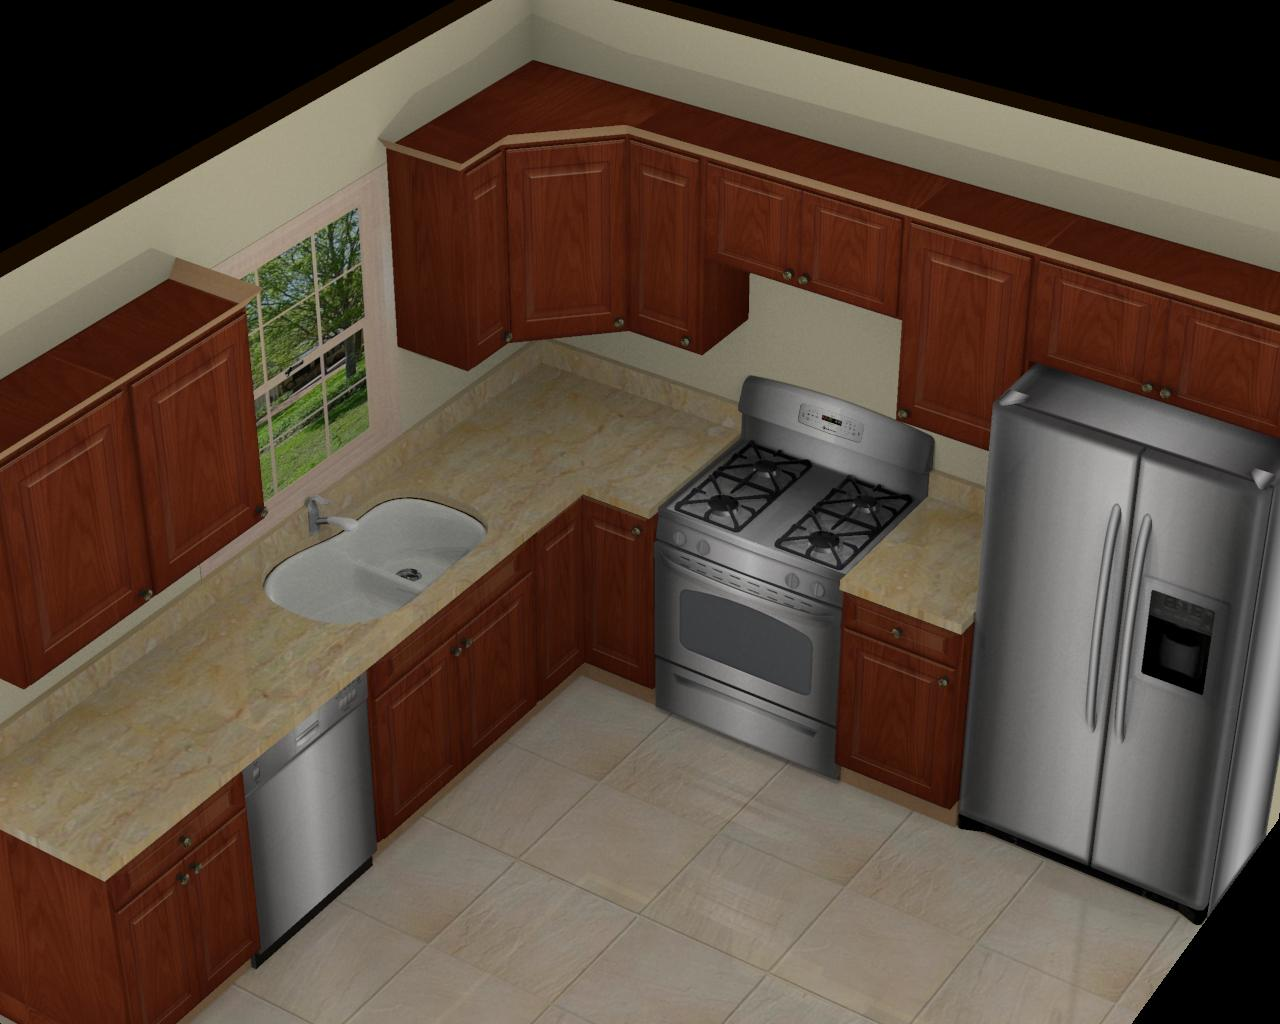 Foundation dezin decor 3d kitchen model design for 7 x 9 kitchen cabinets